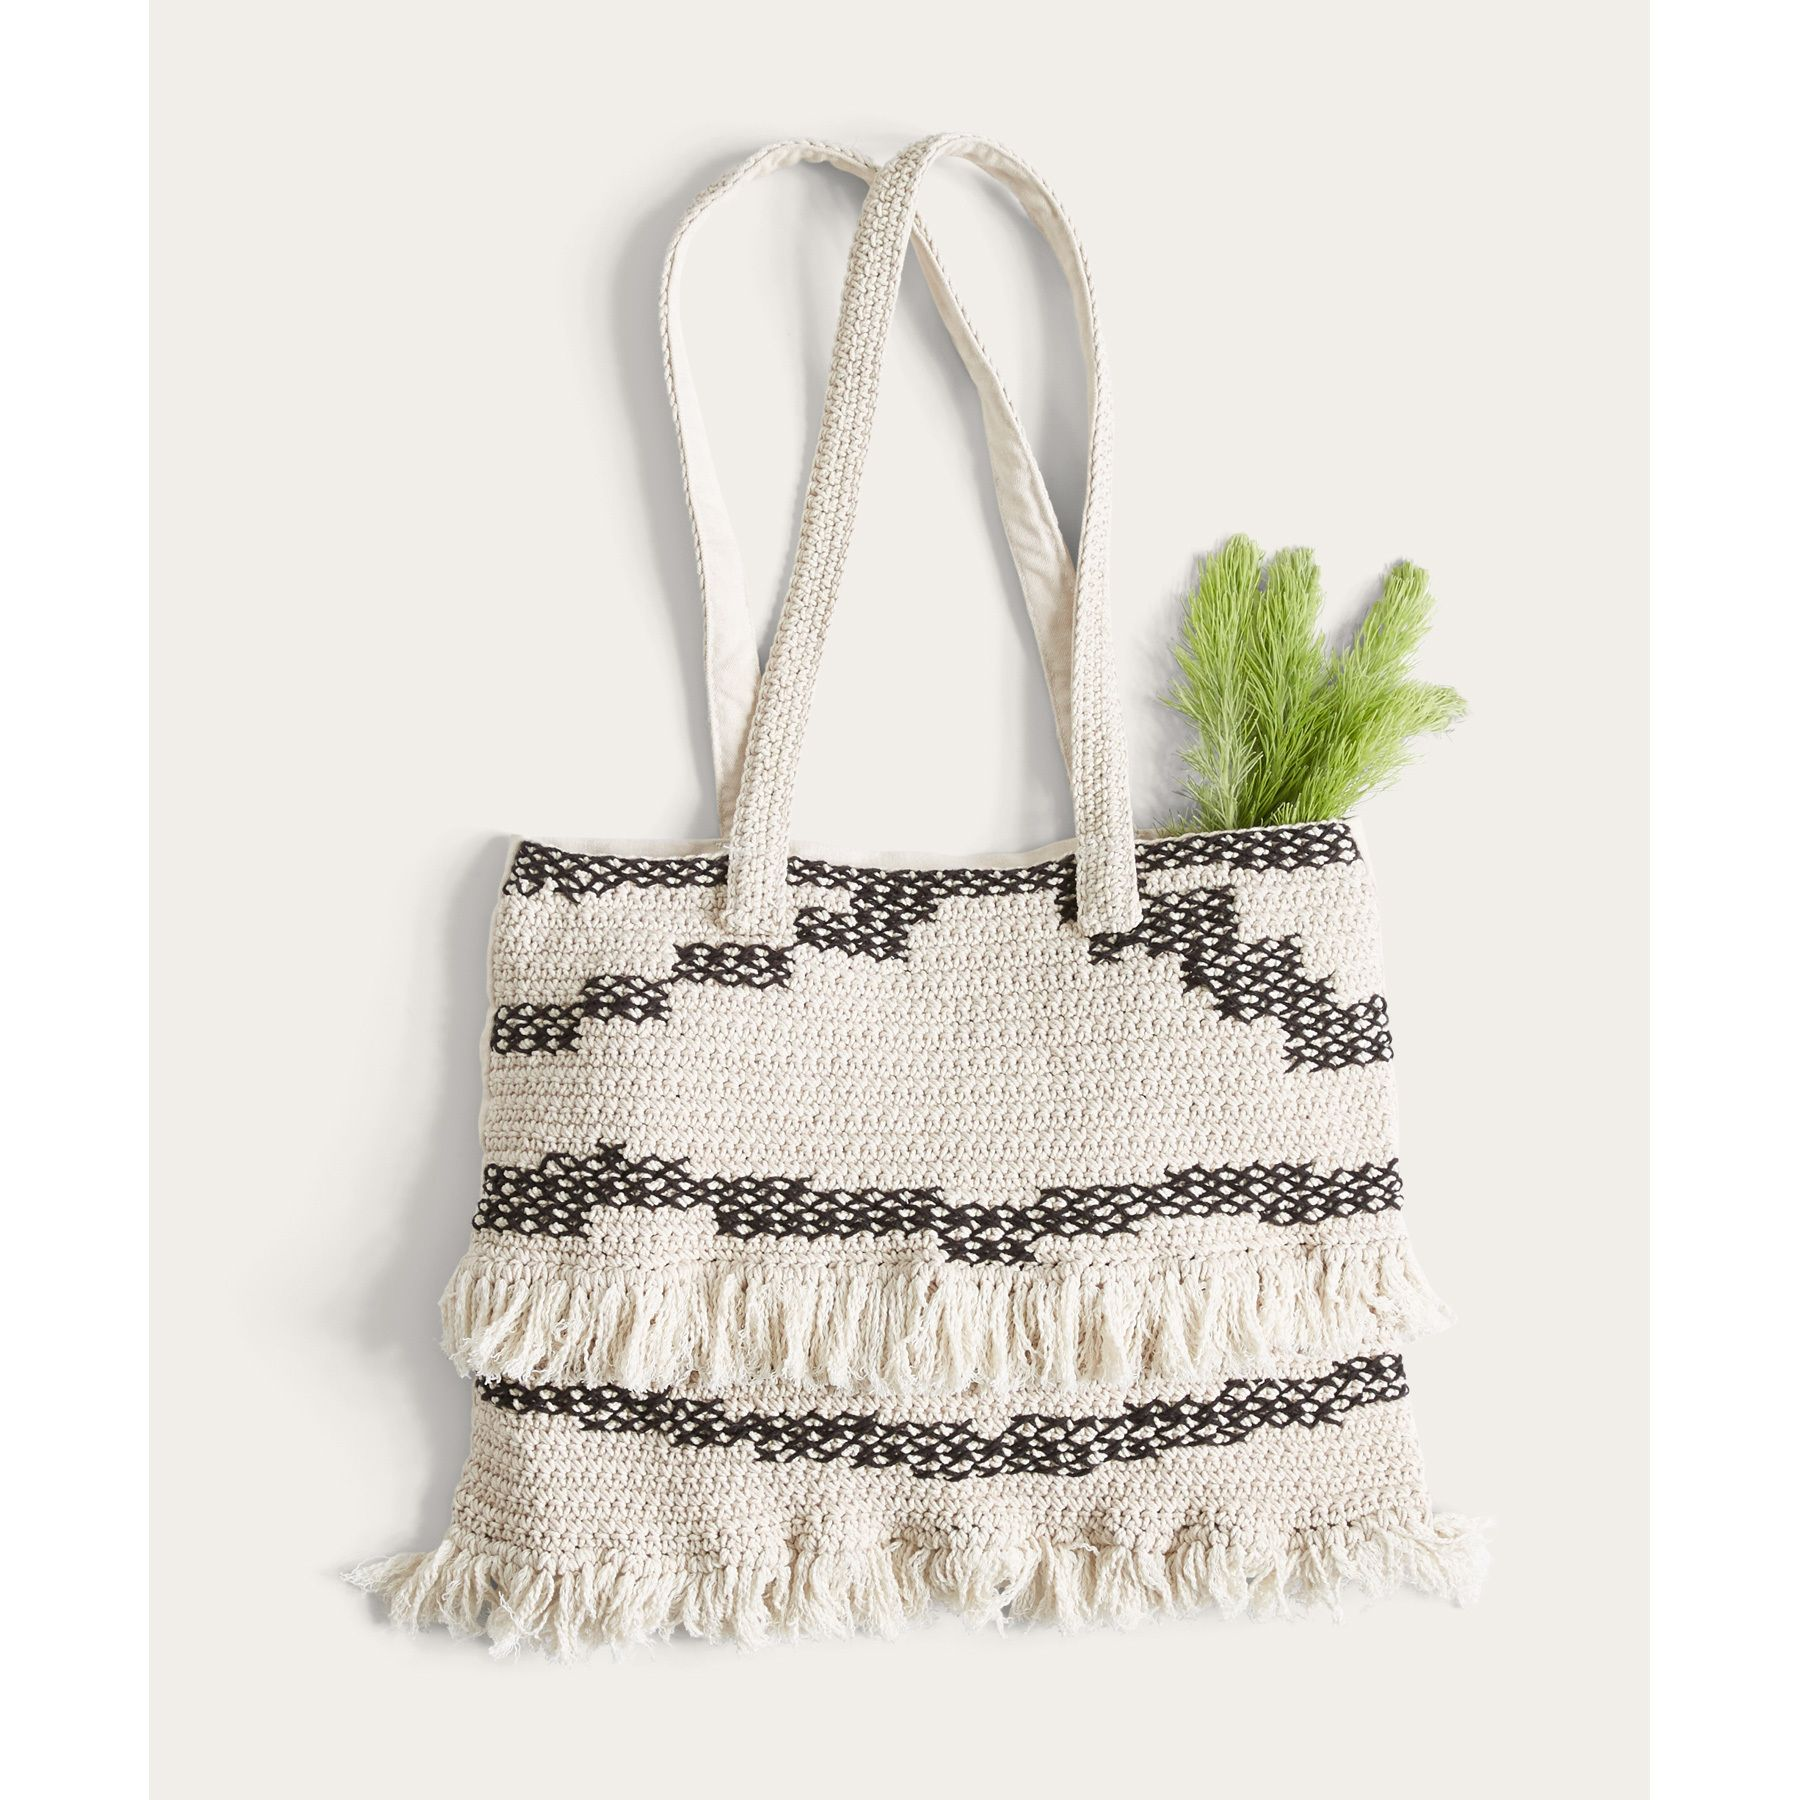 0a14a9d1c697 Get free shipping at the Billabong online store. Wander freely and curate  goods along the way with this bohemian tote.